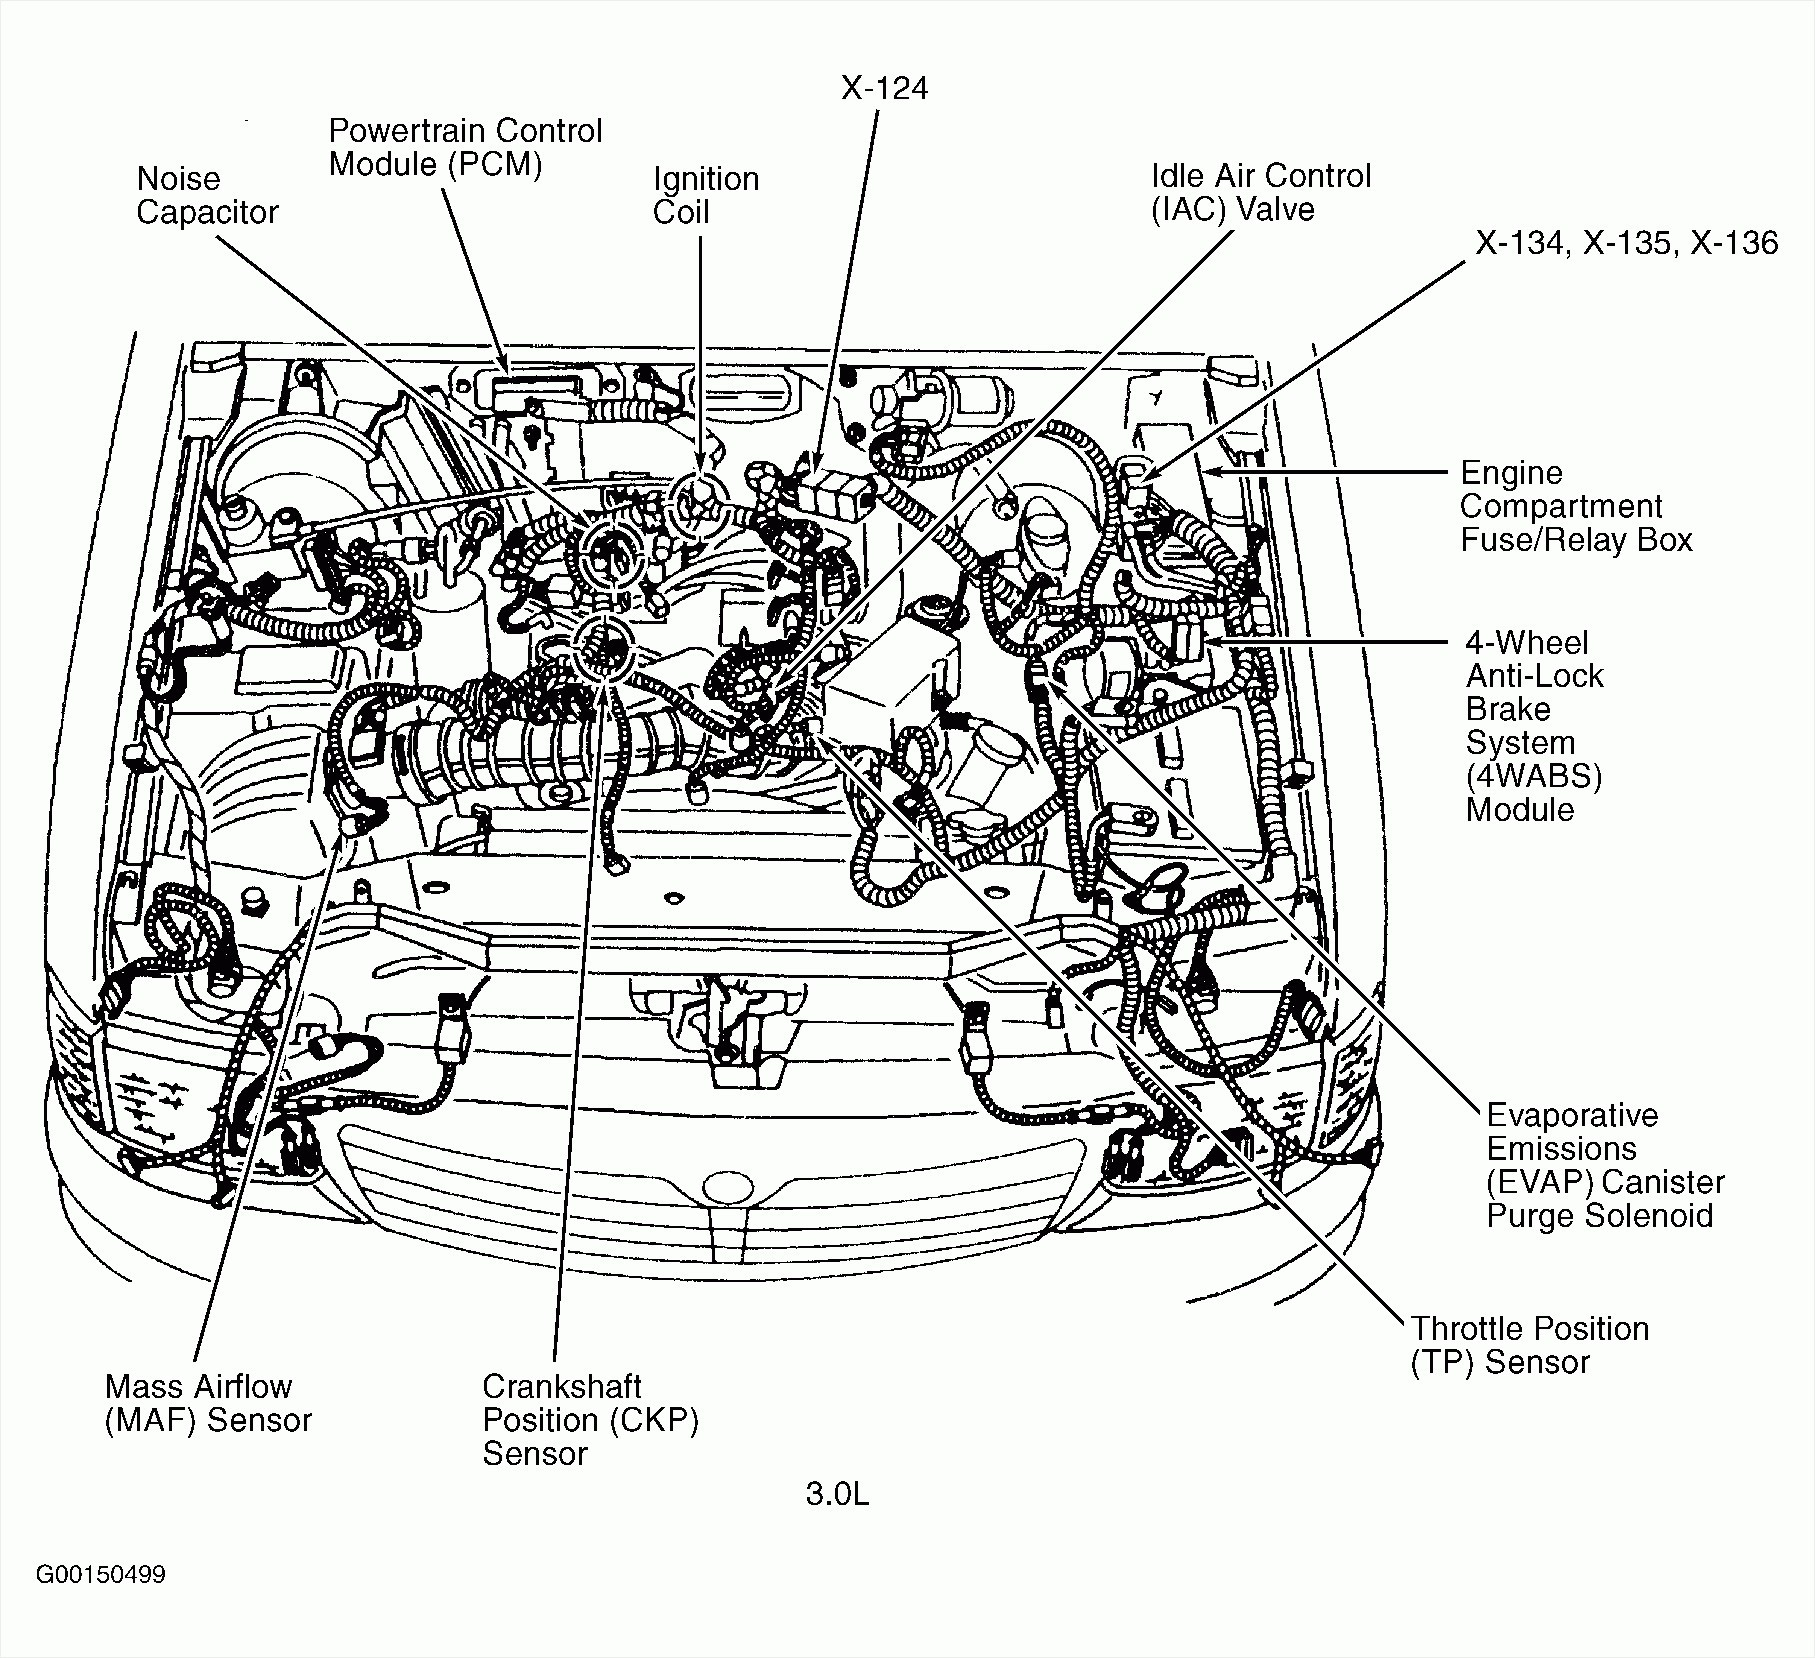 hight resolution of camaro 3 4 engine diagram wiring diagram used 96 chevy camaro v6 engine diagram